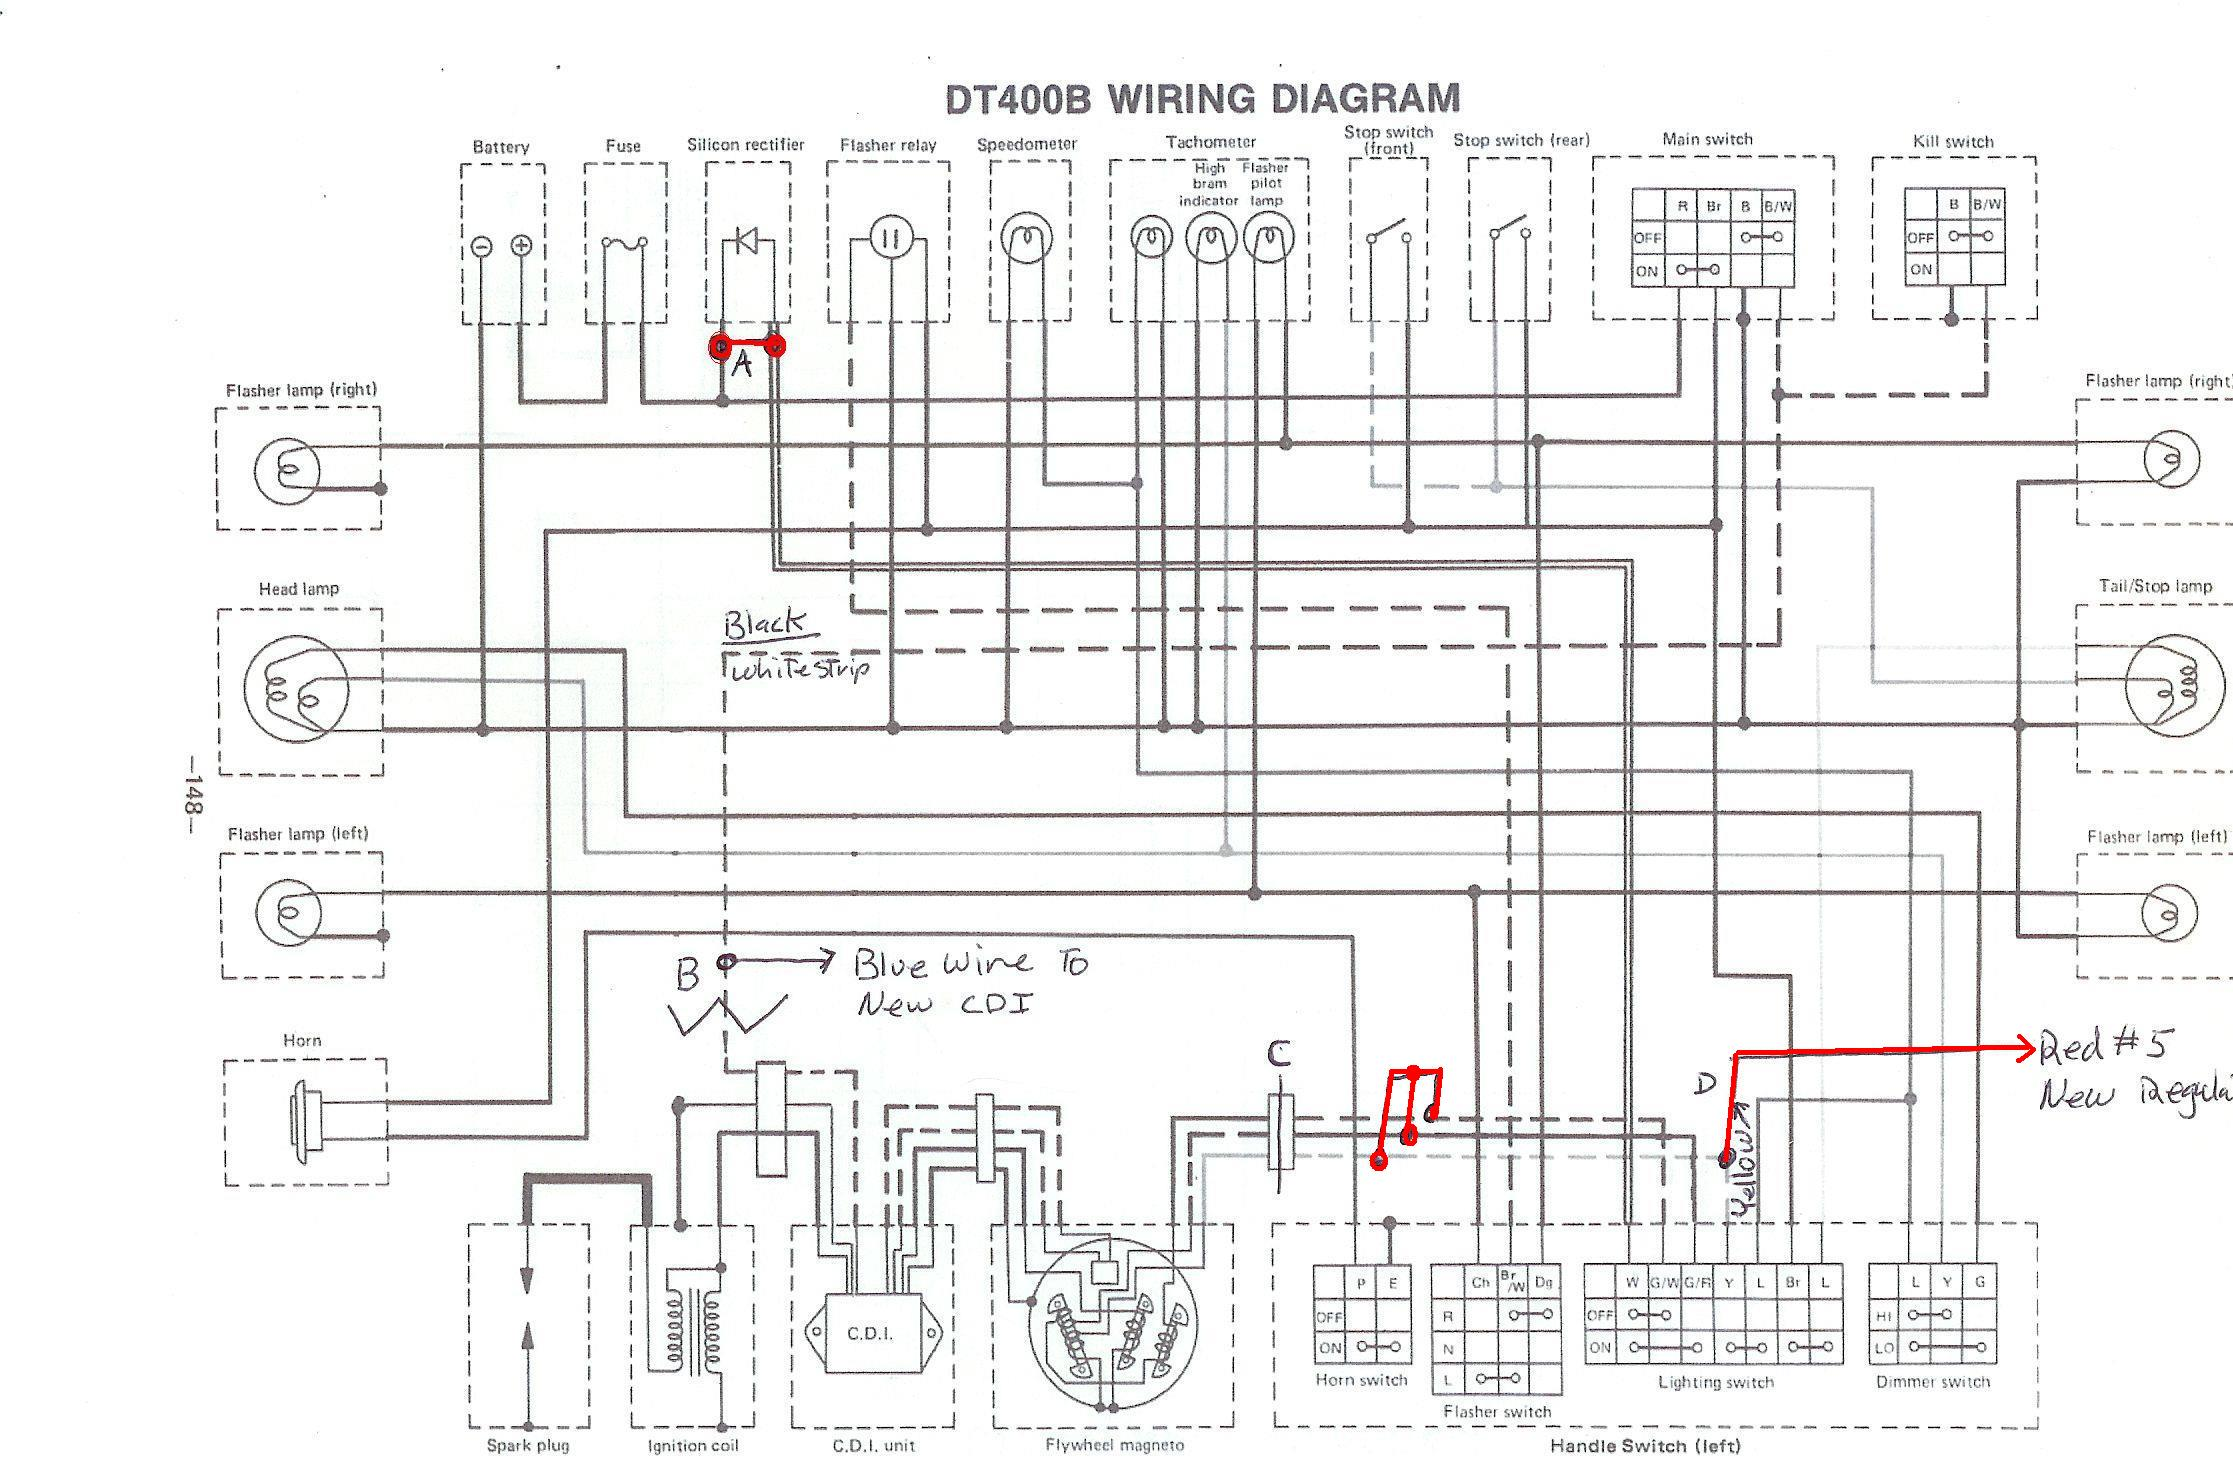 dt400wire powerdynamo for yamaha dt1 2 3, rt1 2 3, dt250 360 400, ty250, yza250 yamaha dt250 wiring diagram at eliteediting.co